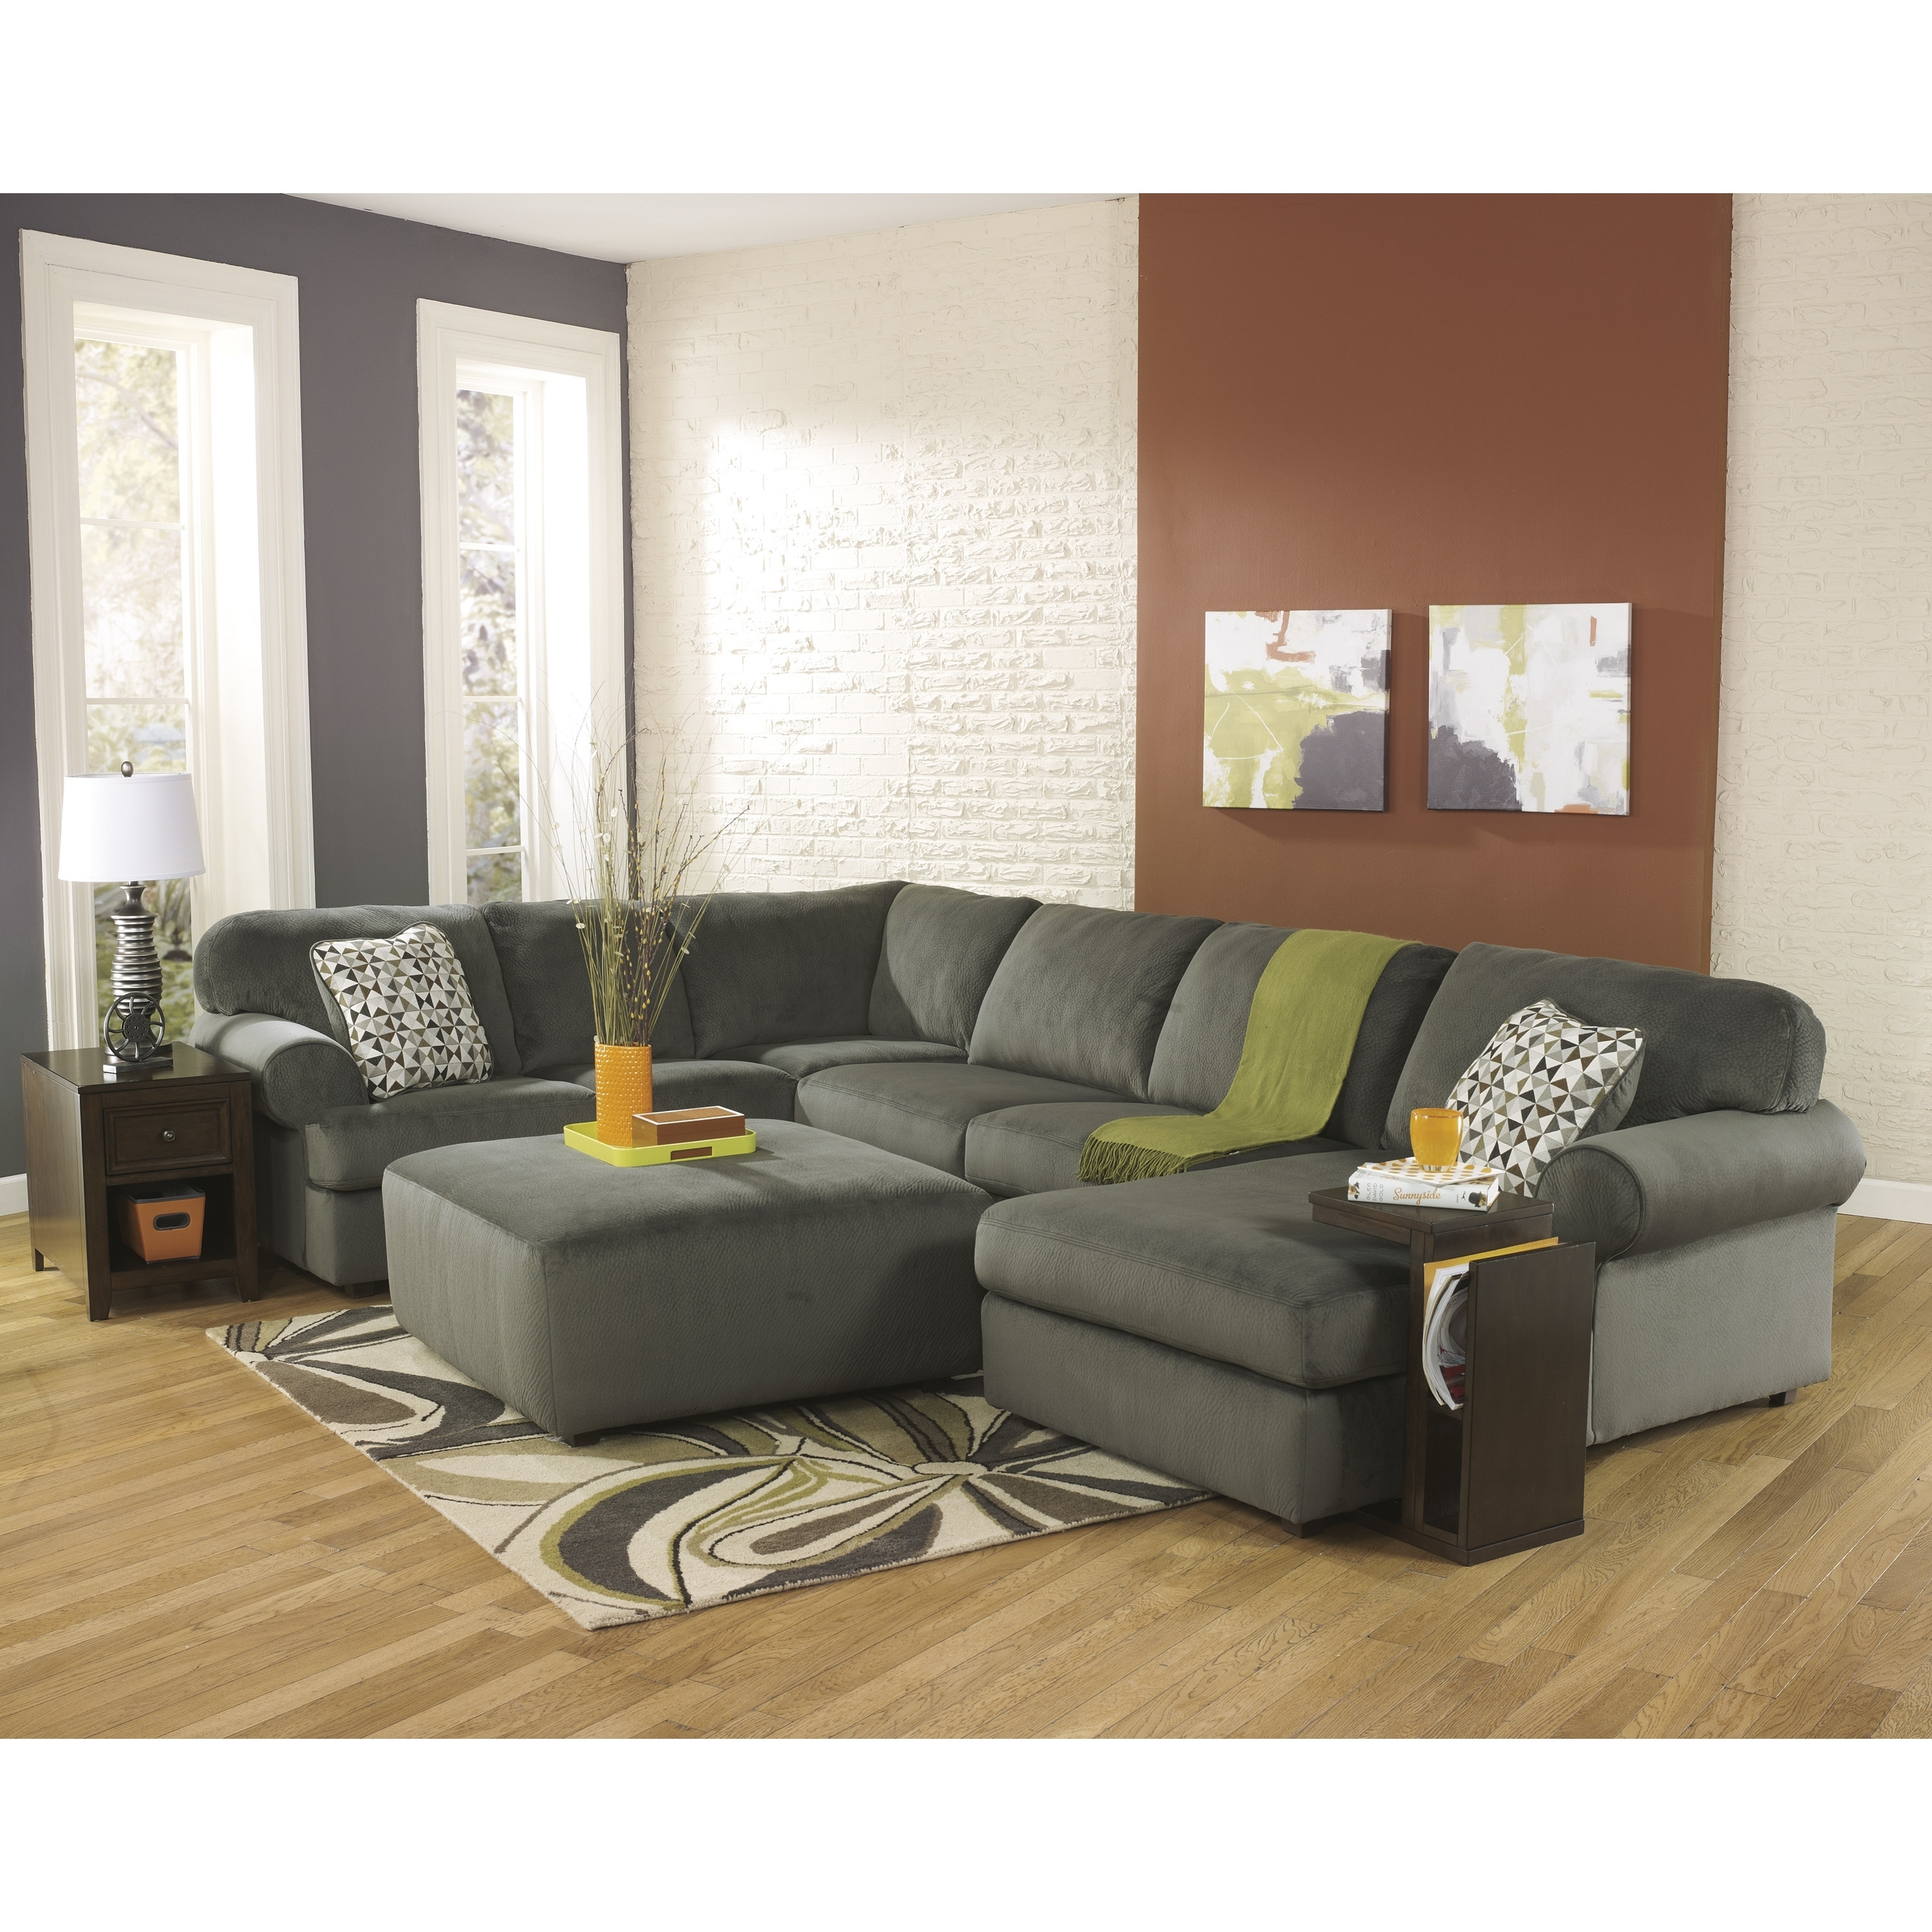 Sears Sectional Sleeper Sofa • Sectional Sofa with regard to Sears Sectional Sofas (Image 9 of 10)